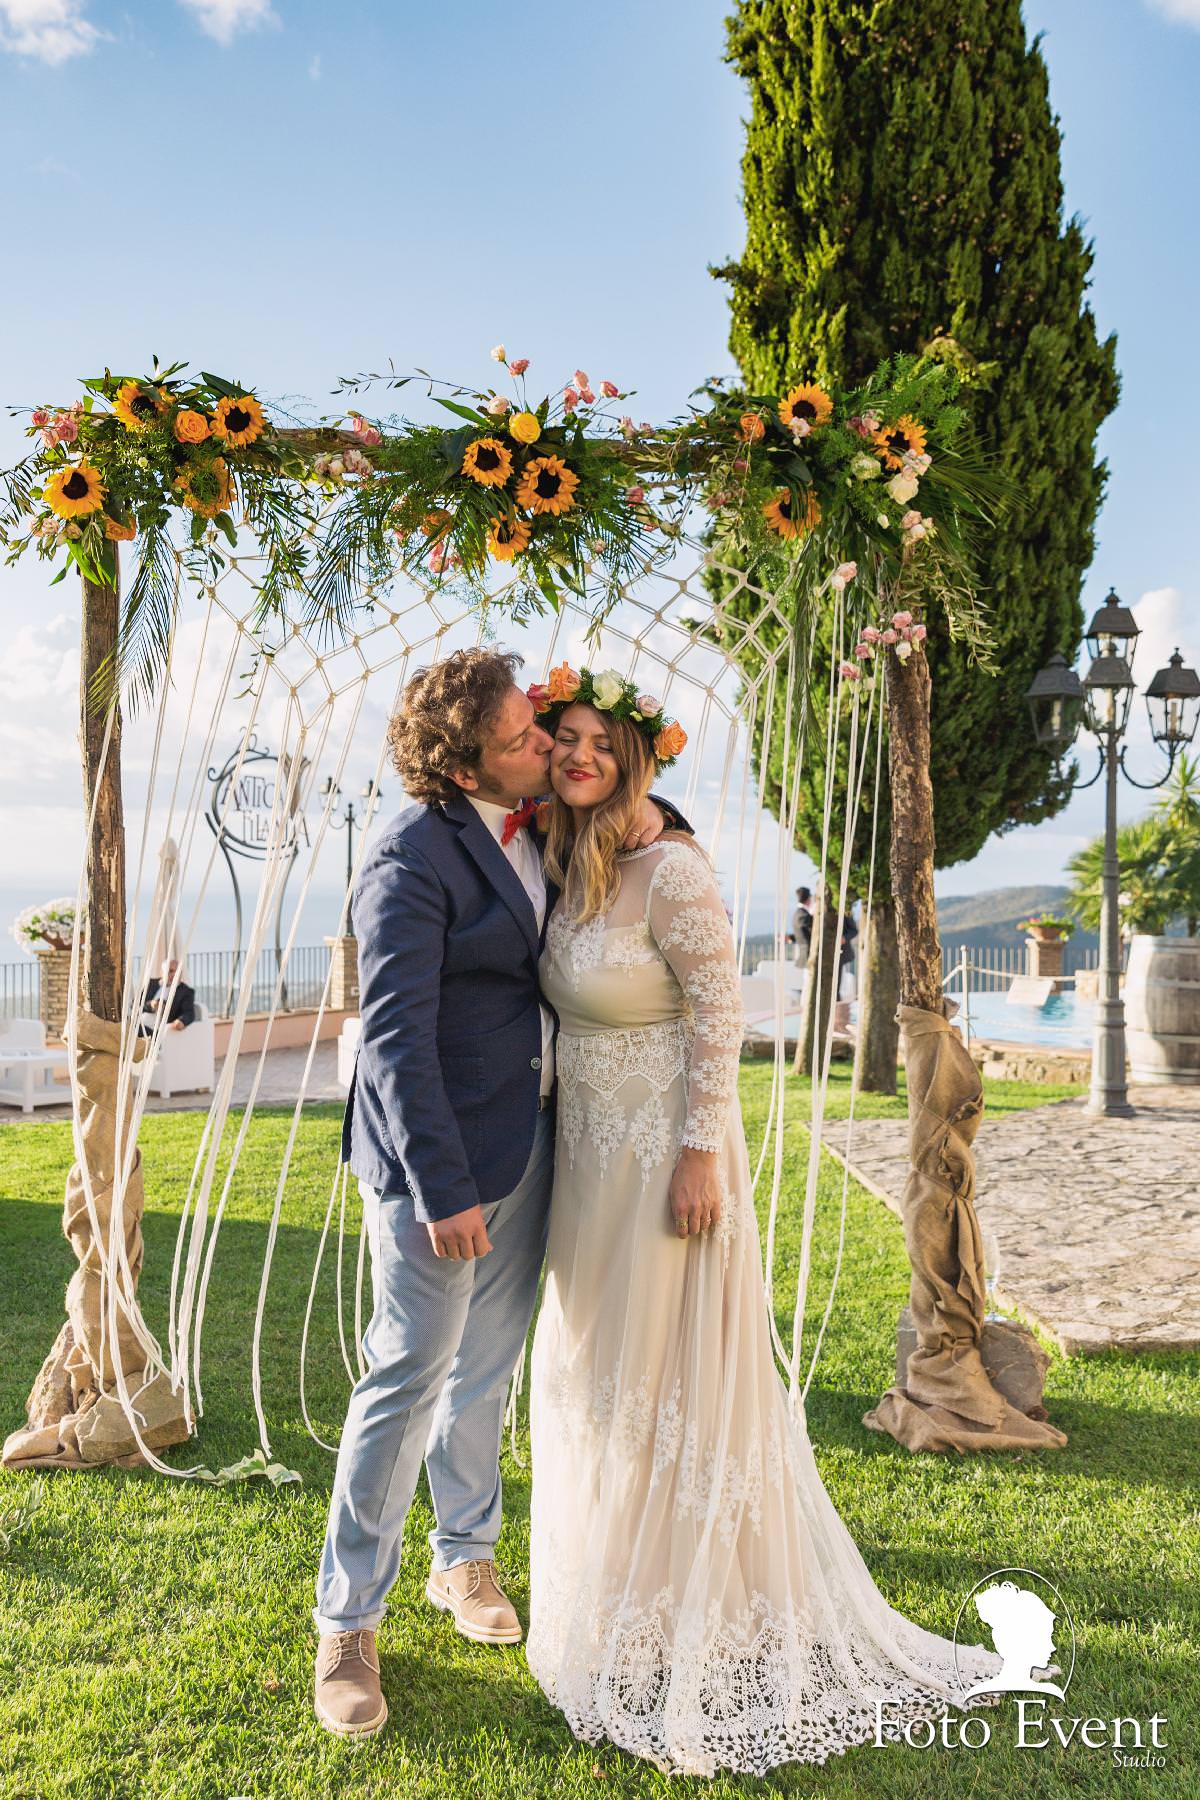 Destination wedding sicily Elisa Bellanti Foto Event Studio 244